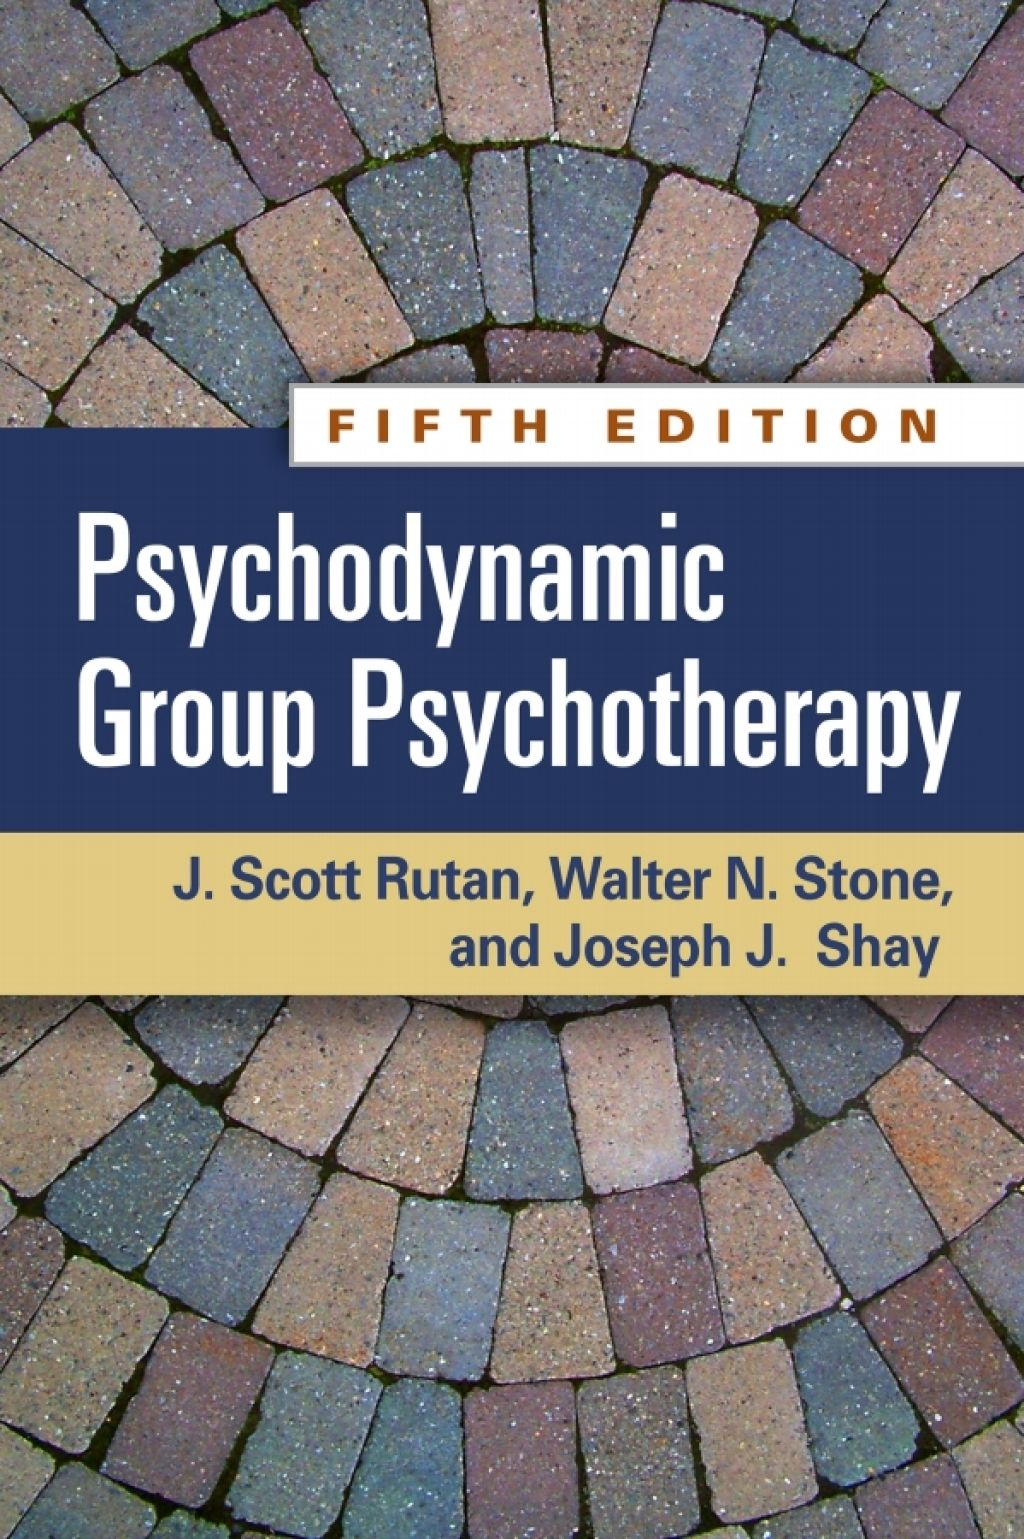 Psychodynamic Group Psychotherapy Fifth Edition Ebook In